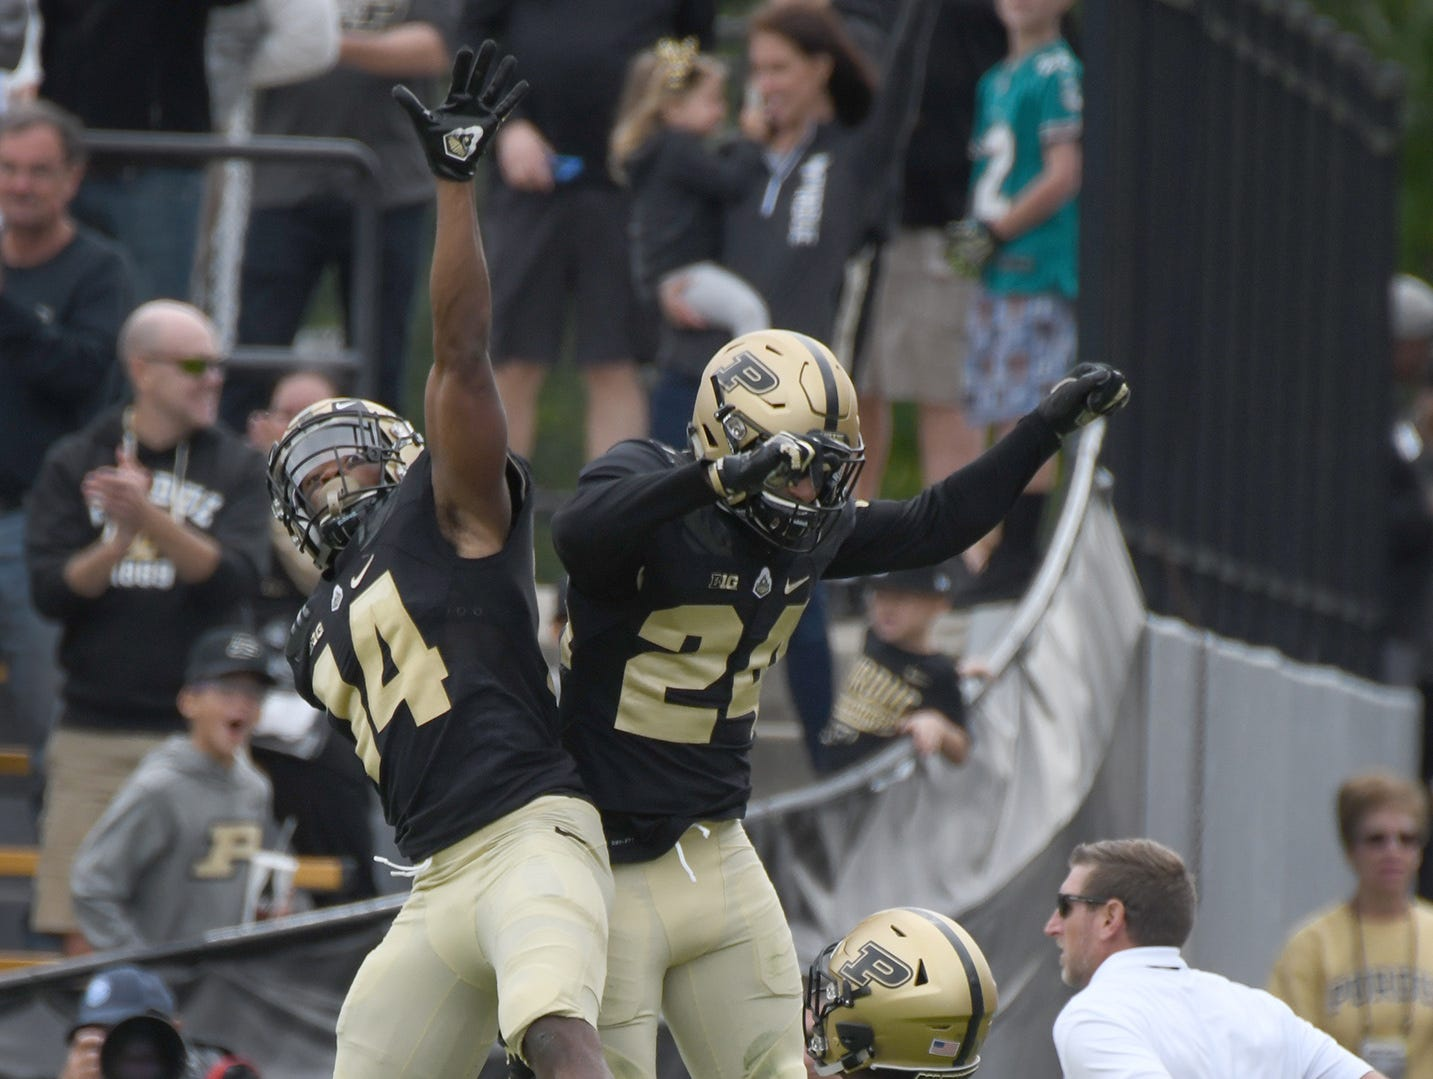 Purdue's Antonio Blackmon, left, celebrates an interception with Tim Cason and Kamal Hardy in Purdue's 30-13 win in West Lafayette on Saturday September 22, 2018.